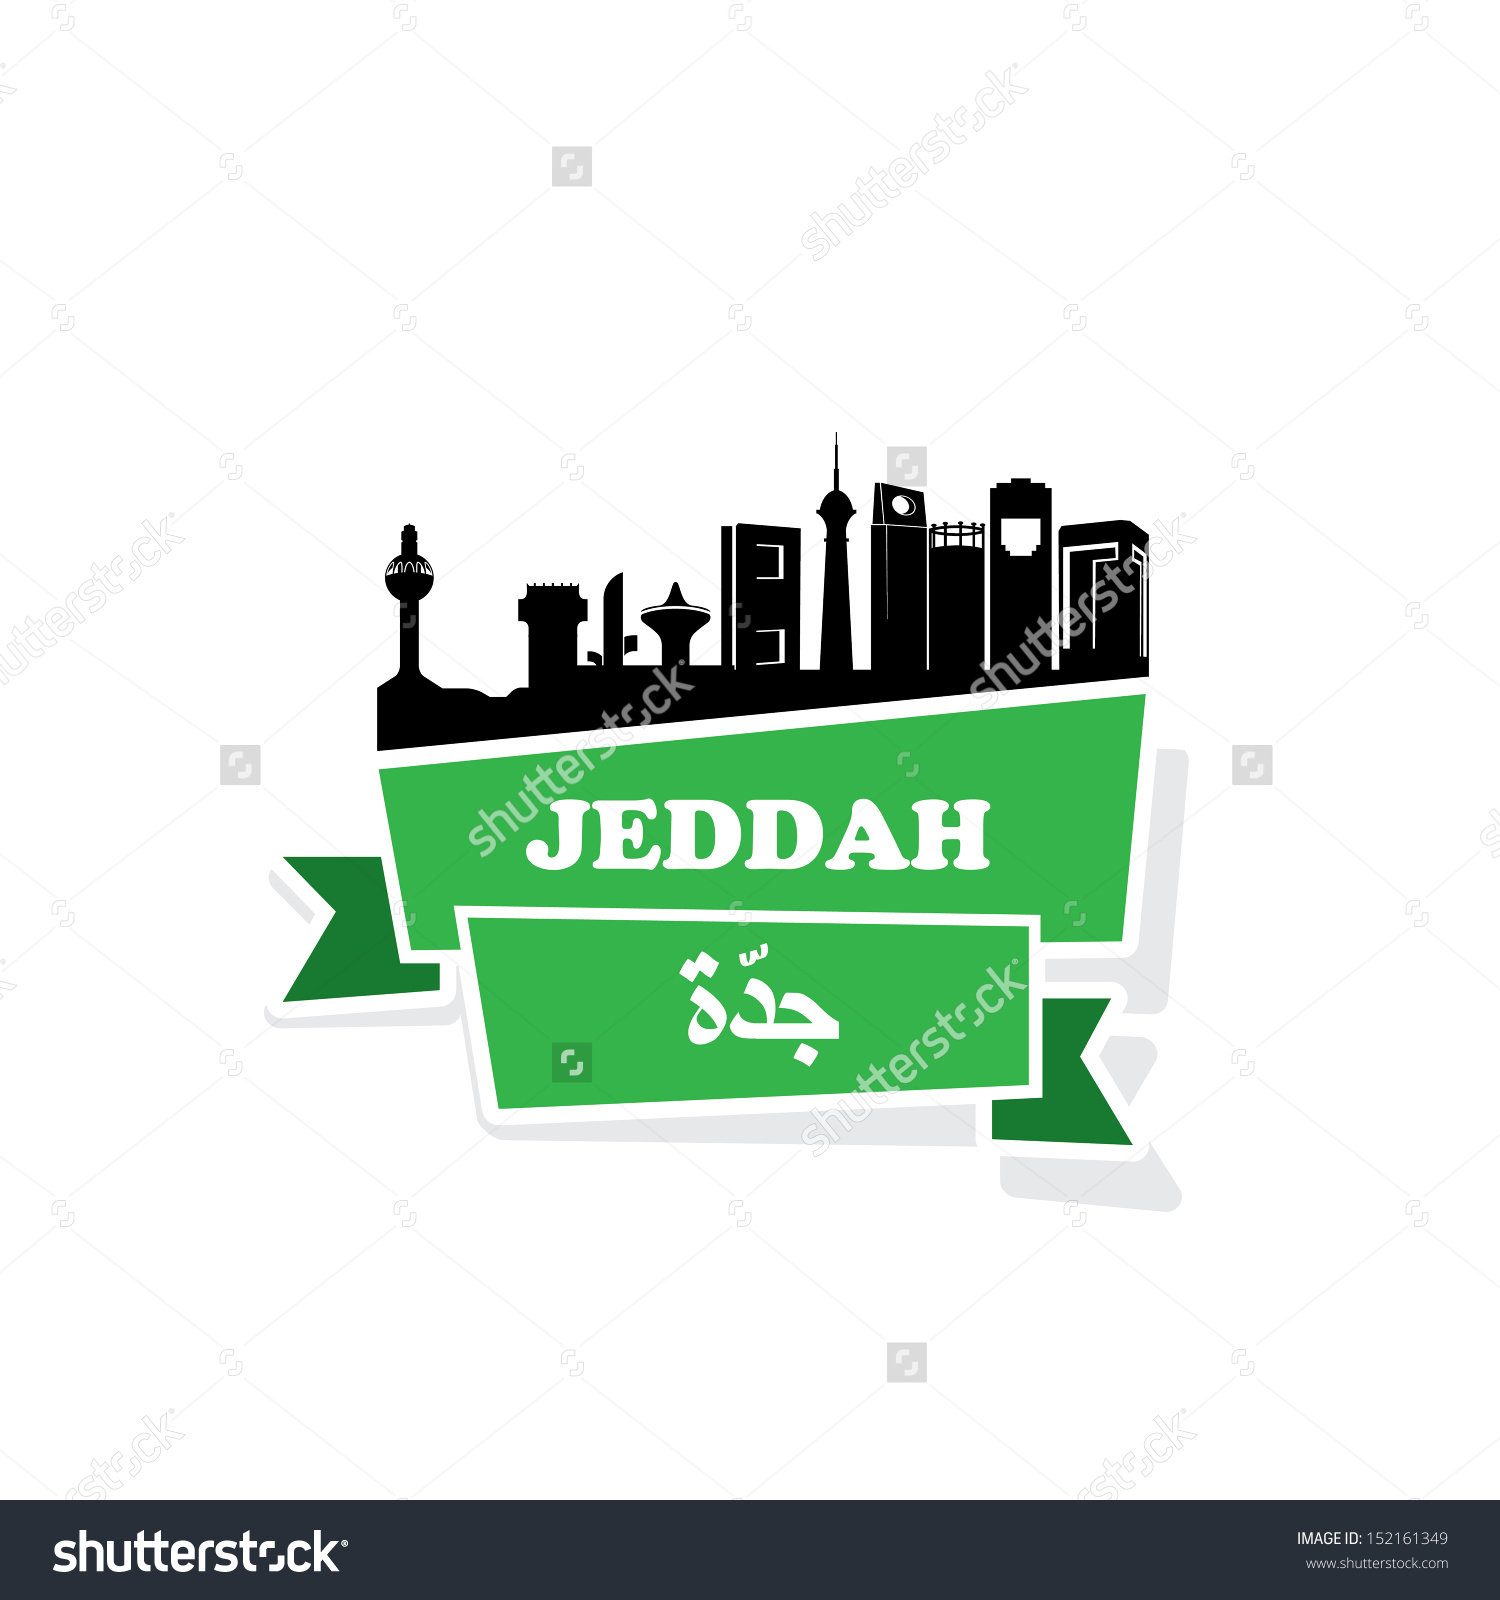 Jeddah City Ribbon Banner Vector Illustration Stock Vector.